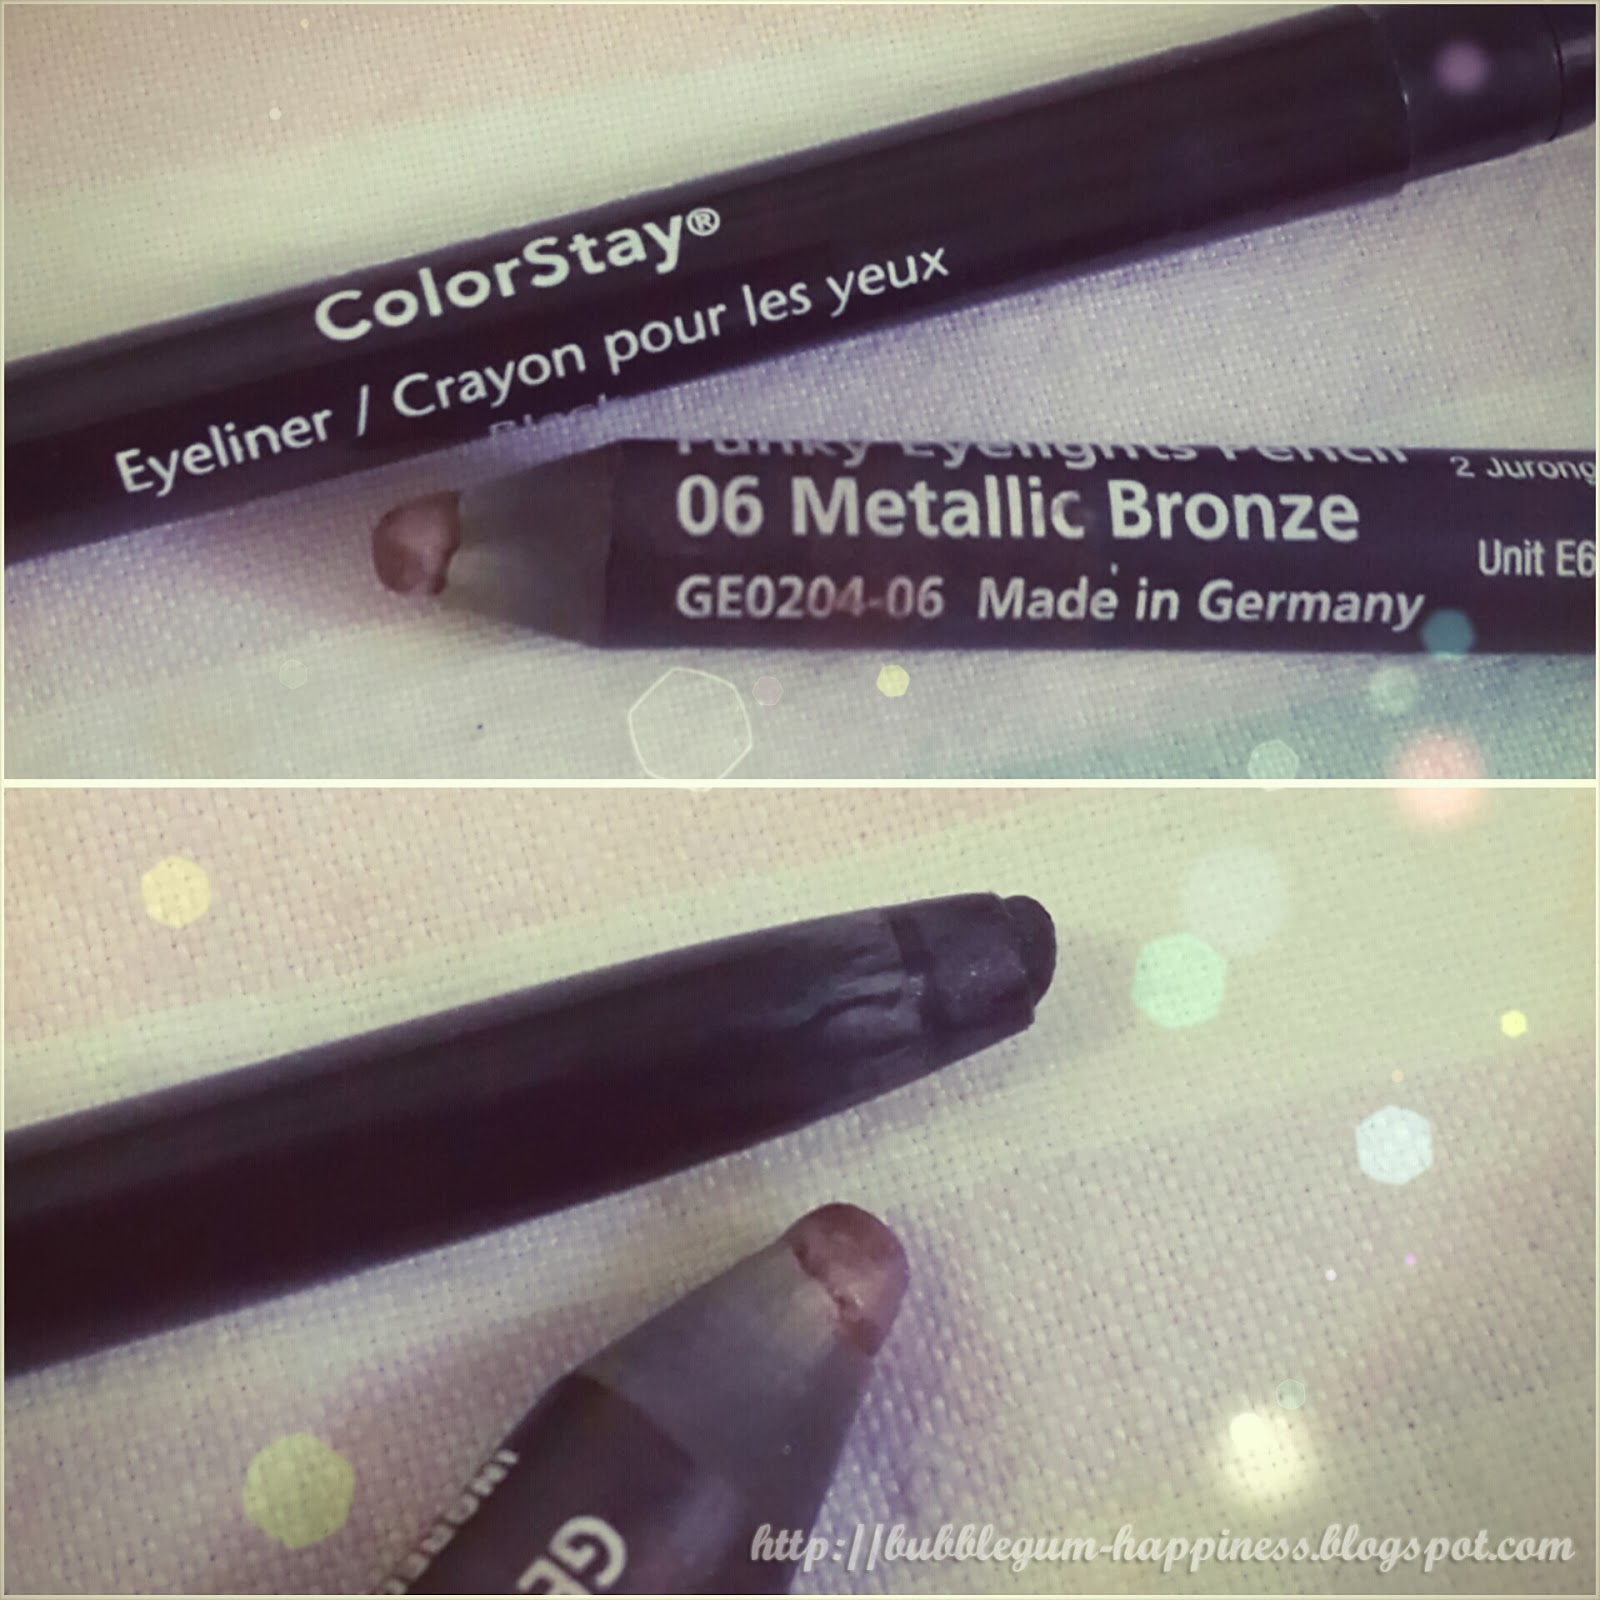 The Revlon colorstay is a twist up pen in color black that I use for my upper liner